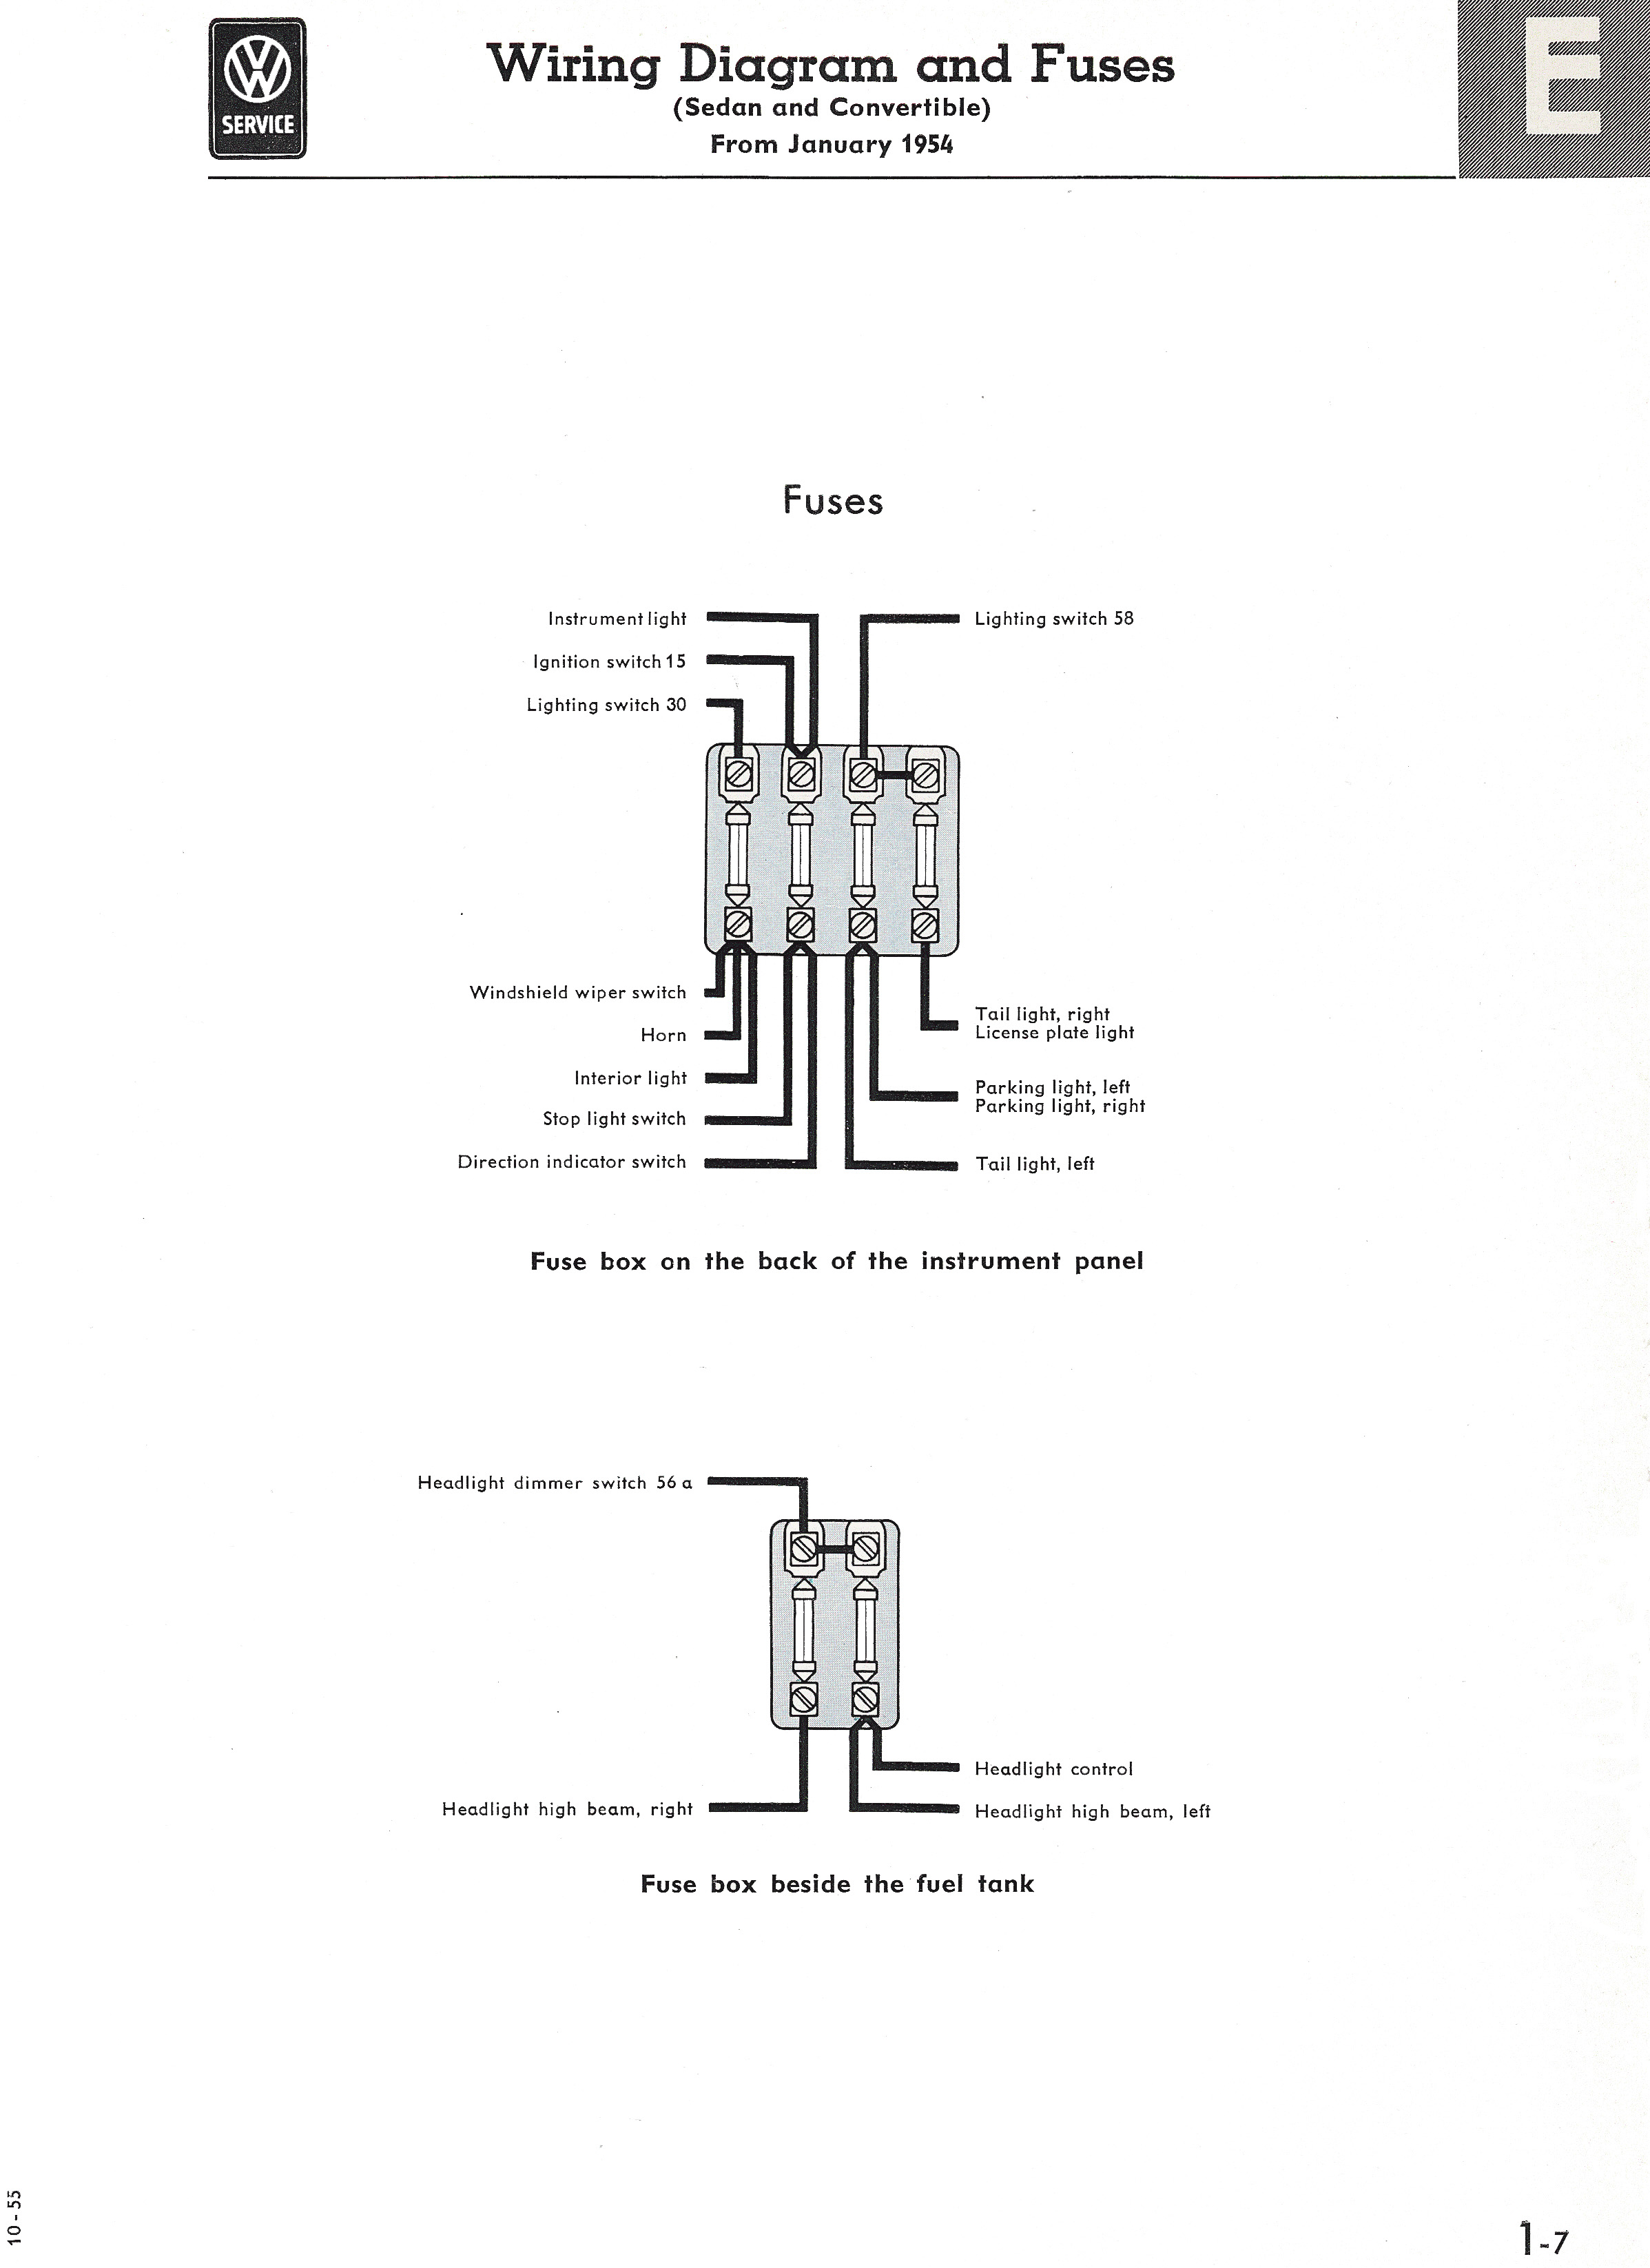 1969 vw bug turn signal wiring wiring diagramwrg 9424] type 1 vw engine wiring[wrg 9424] type 1 vw engine